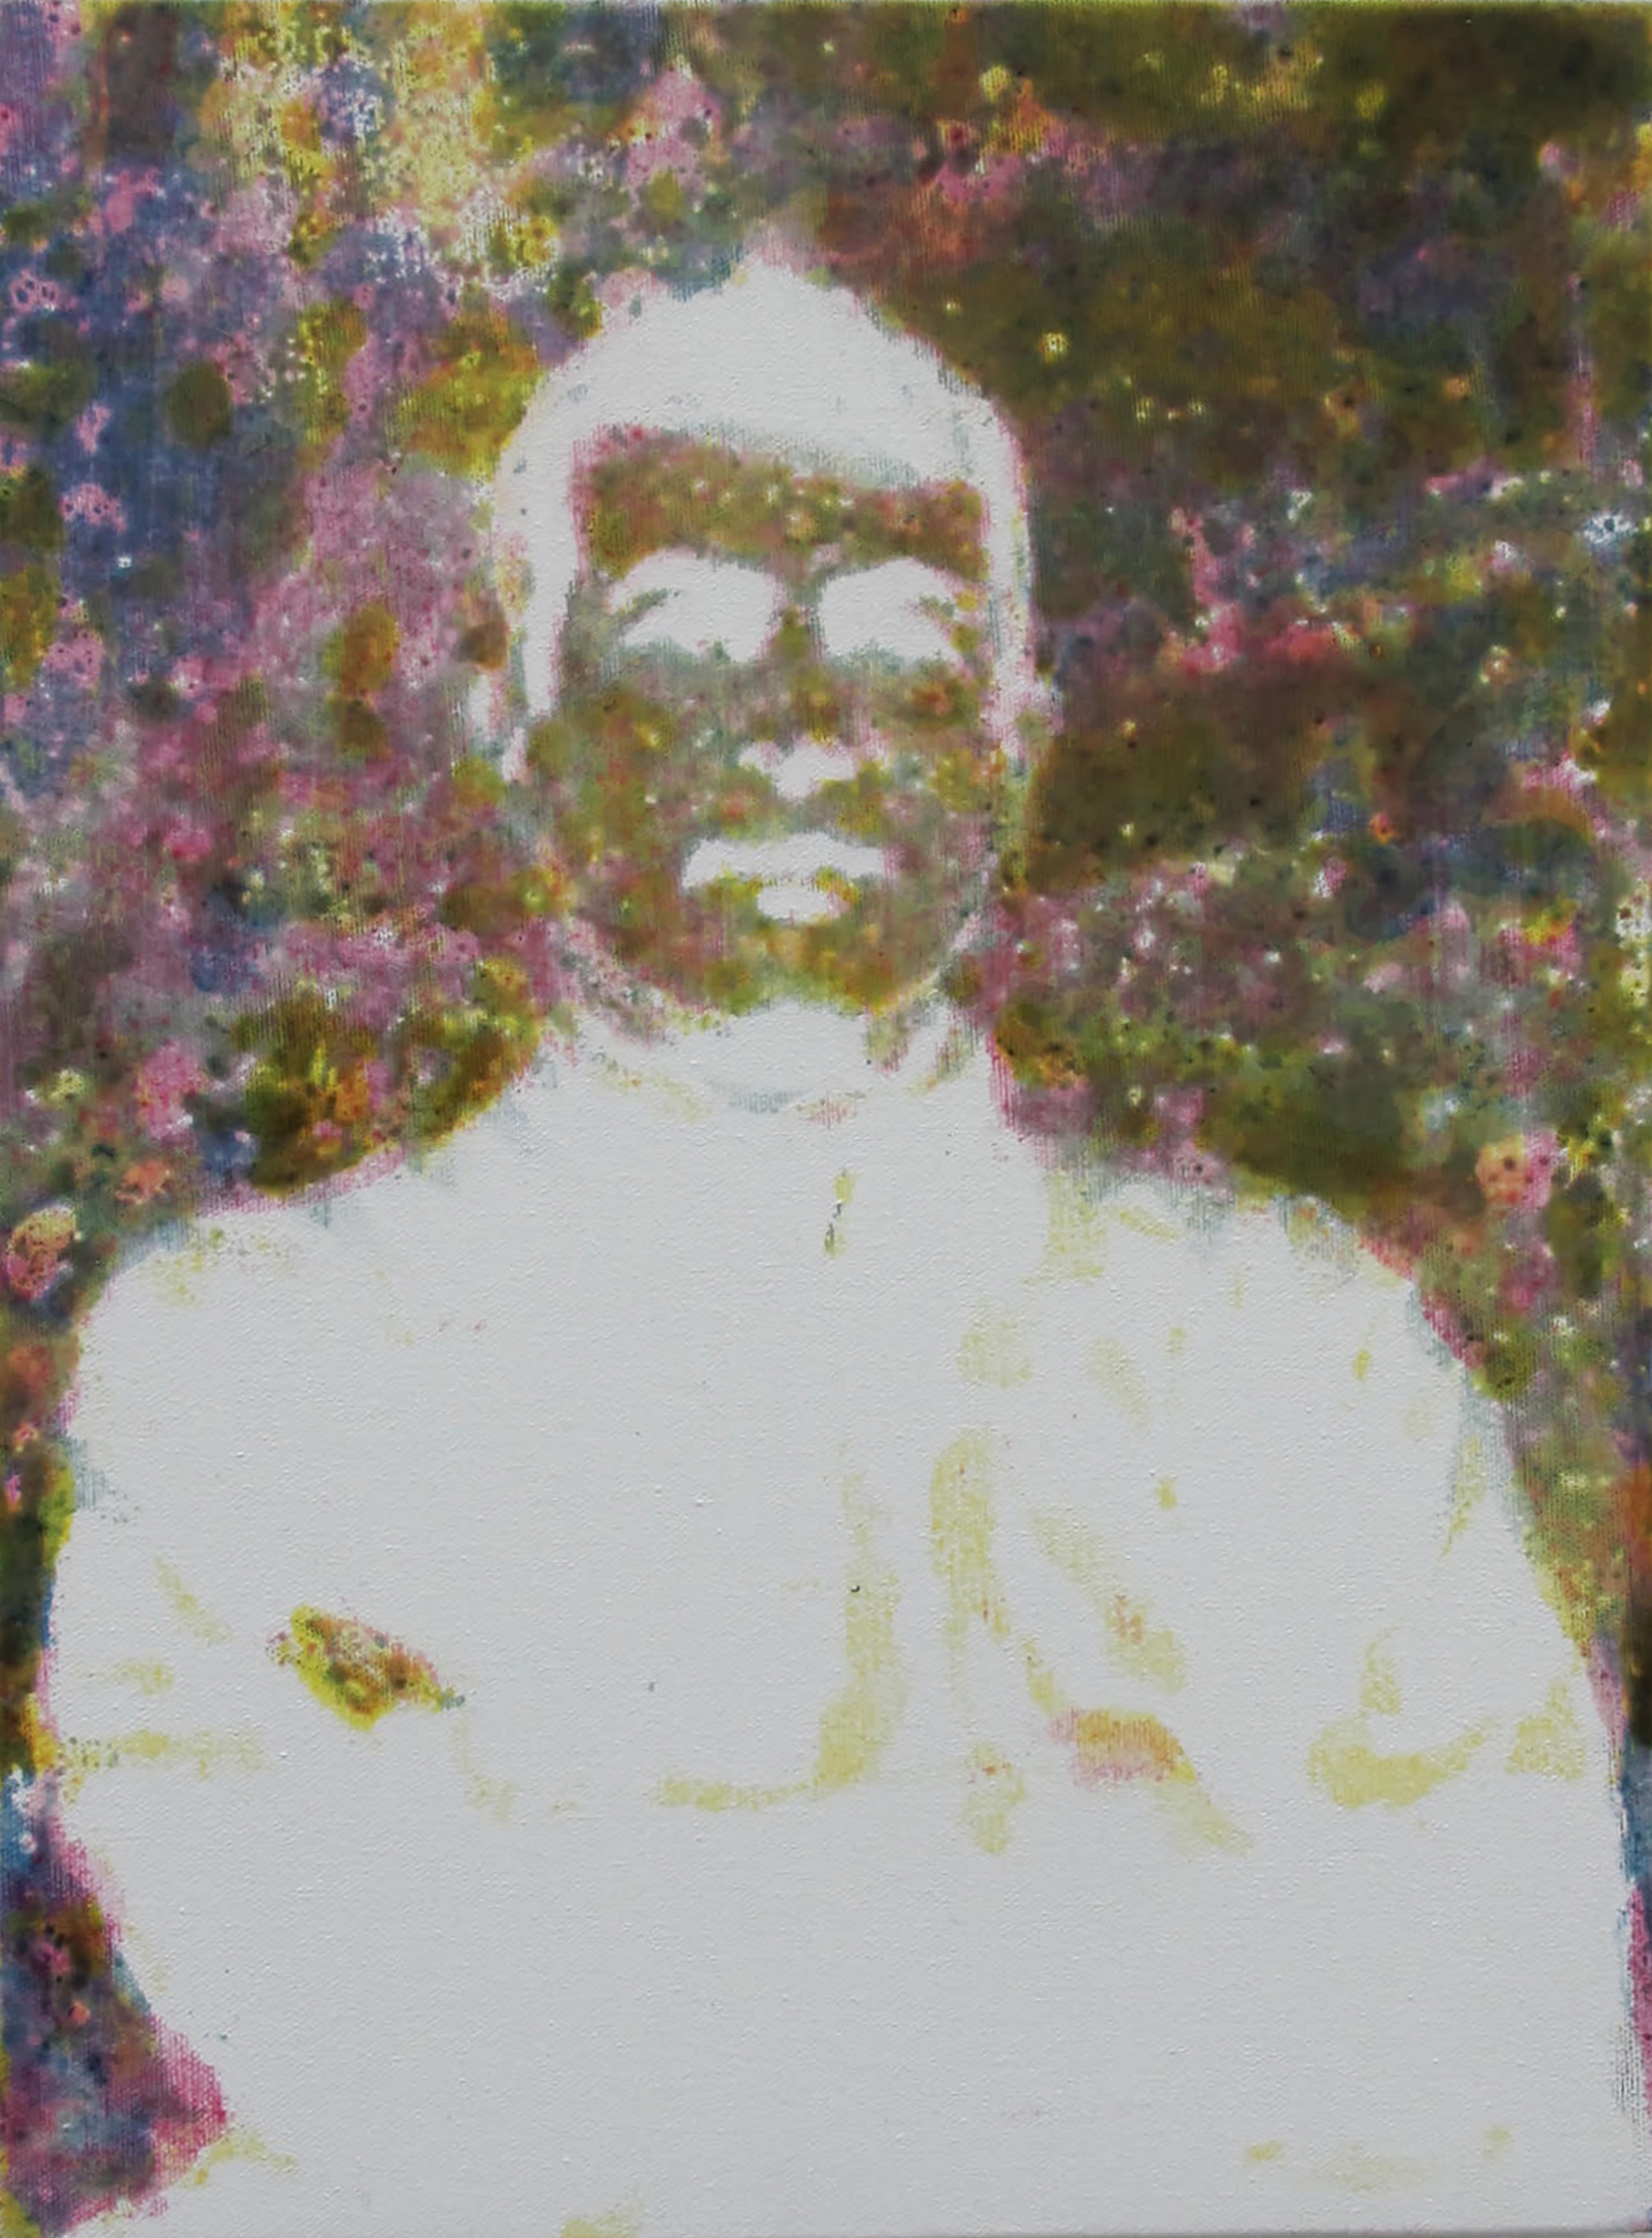 Self portrait as after image 1